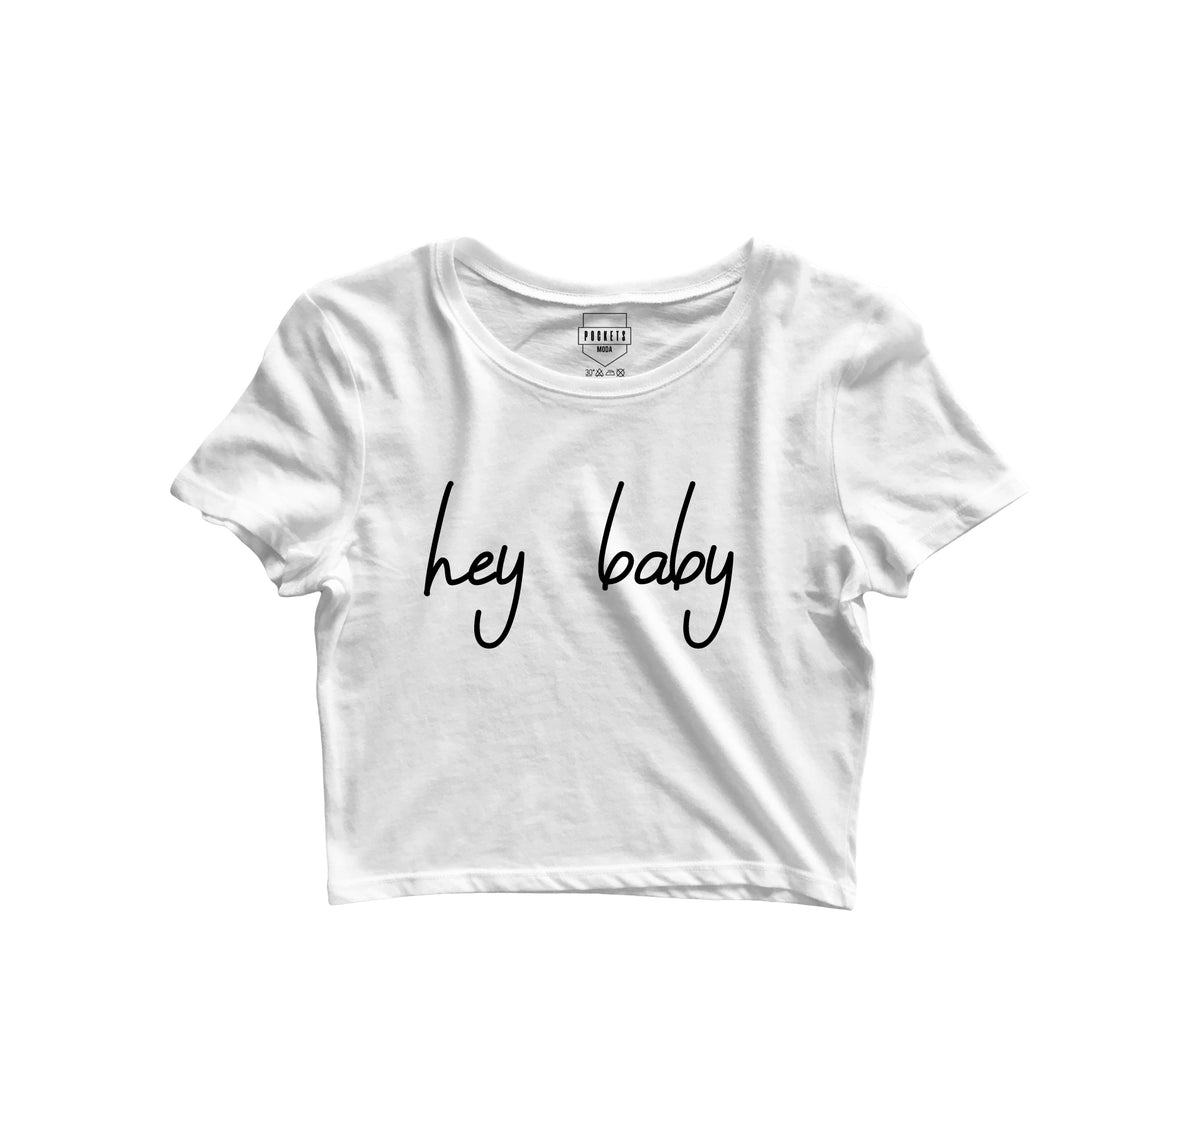 Hey Baby Crop Top - Pockets Moda Customise Hoodies and Tshirt